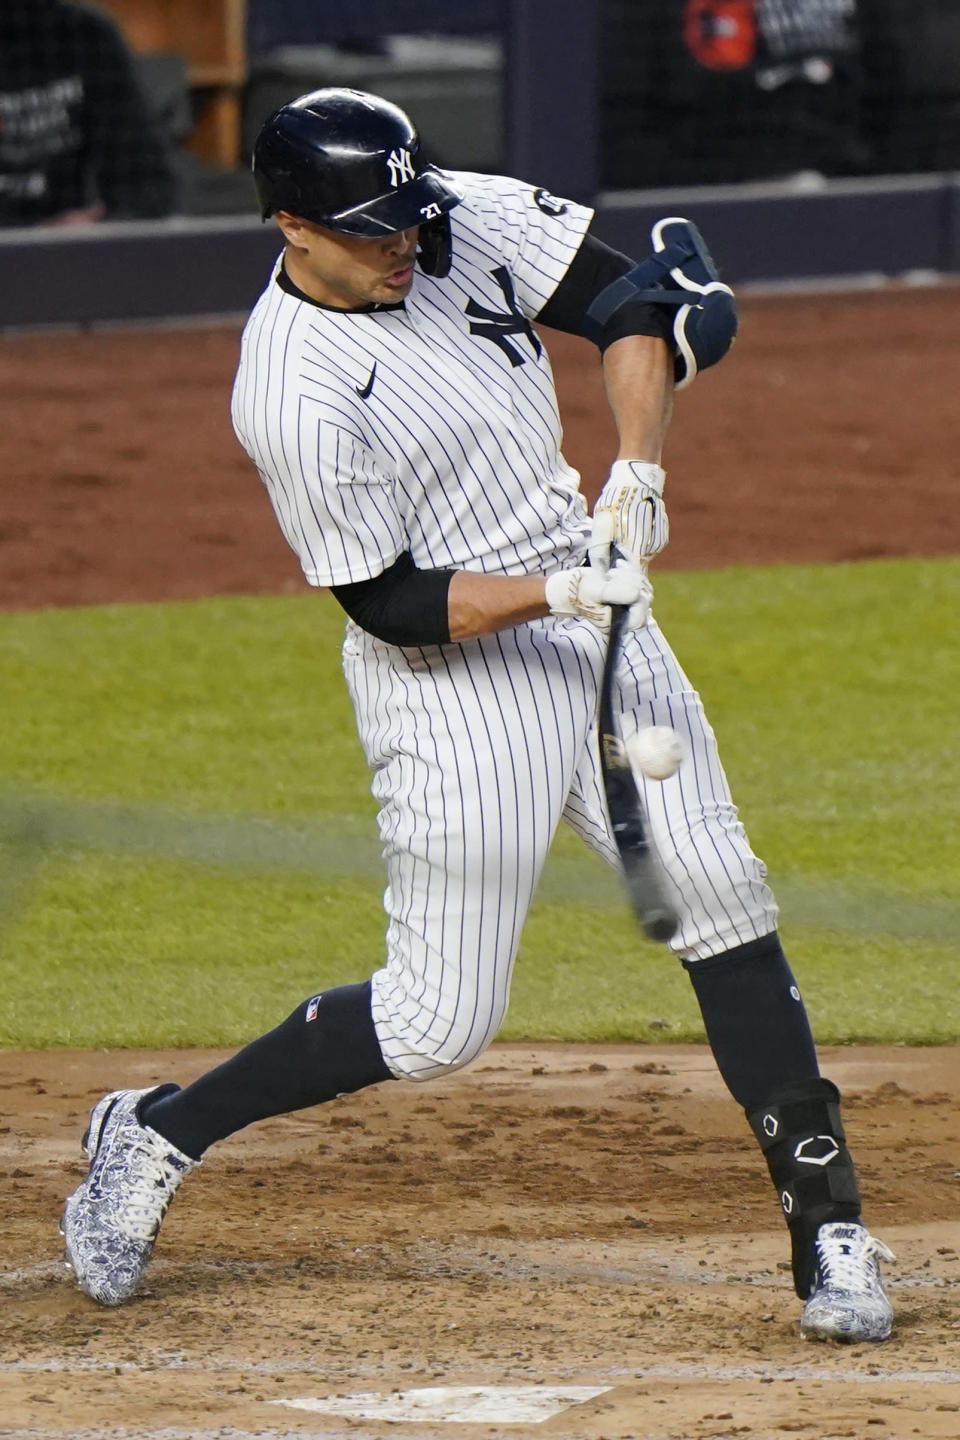 New York Yankees designated hitter Giancarlo Stanton grounds into a double play with two runners on base in the third inning of the team's baseball game against the Baltimore Orioles, Wednesday, April 7, 2021, at Yankee Stadium in New York. (AP Photo/Kathy Willens)